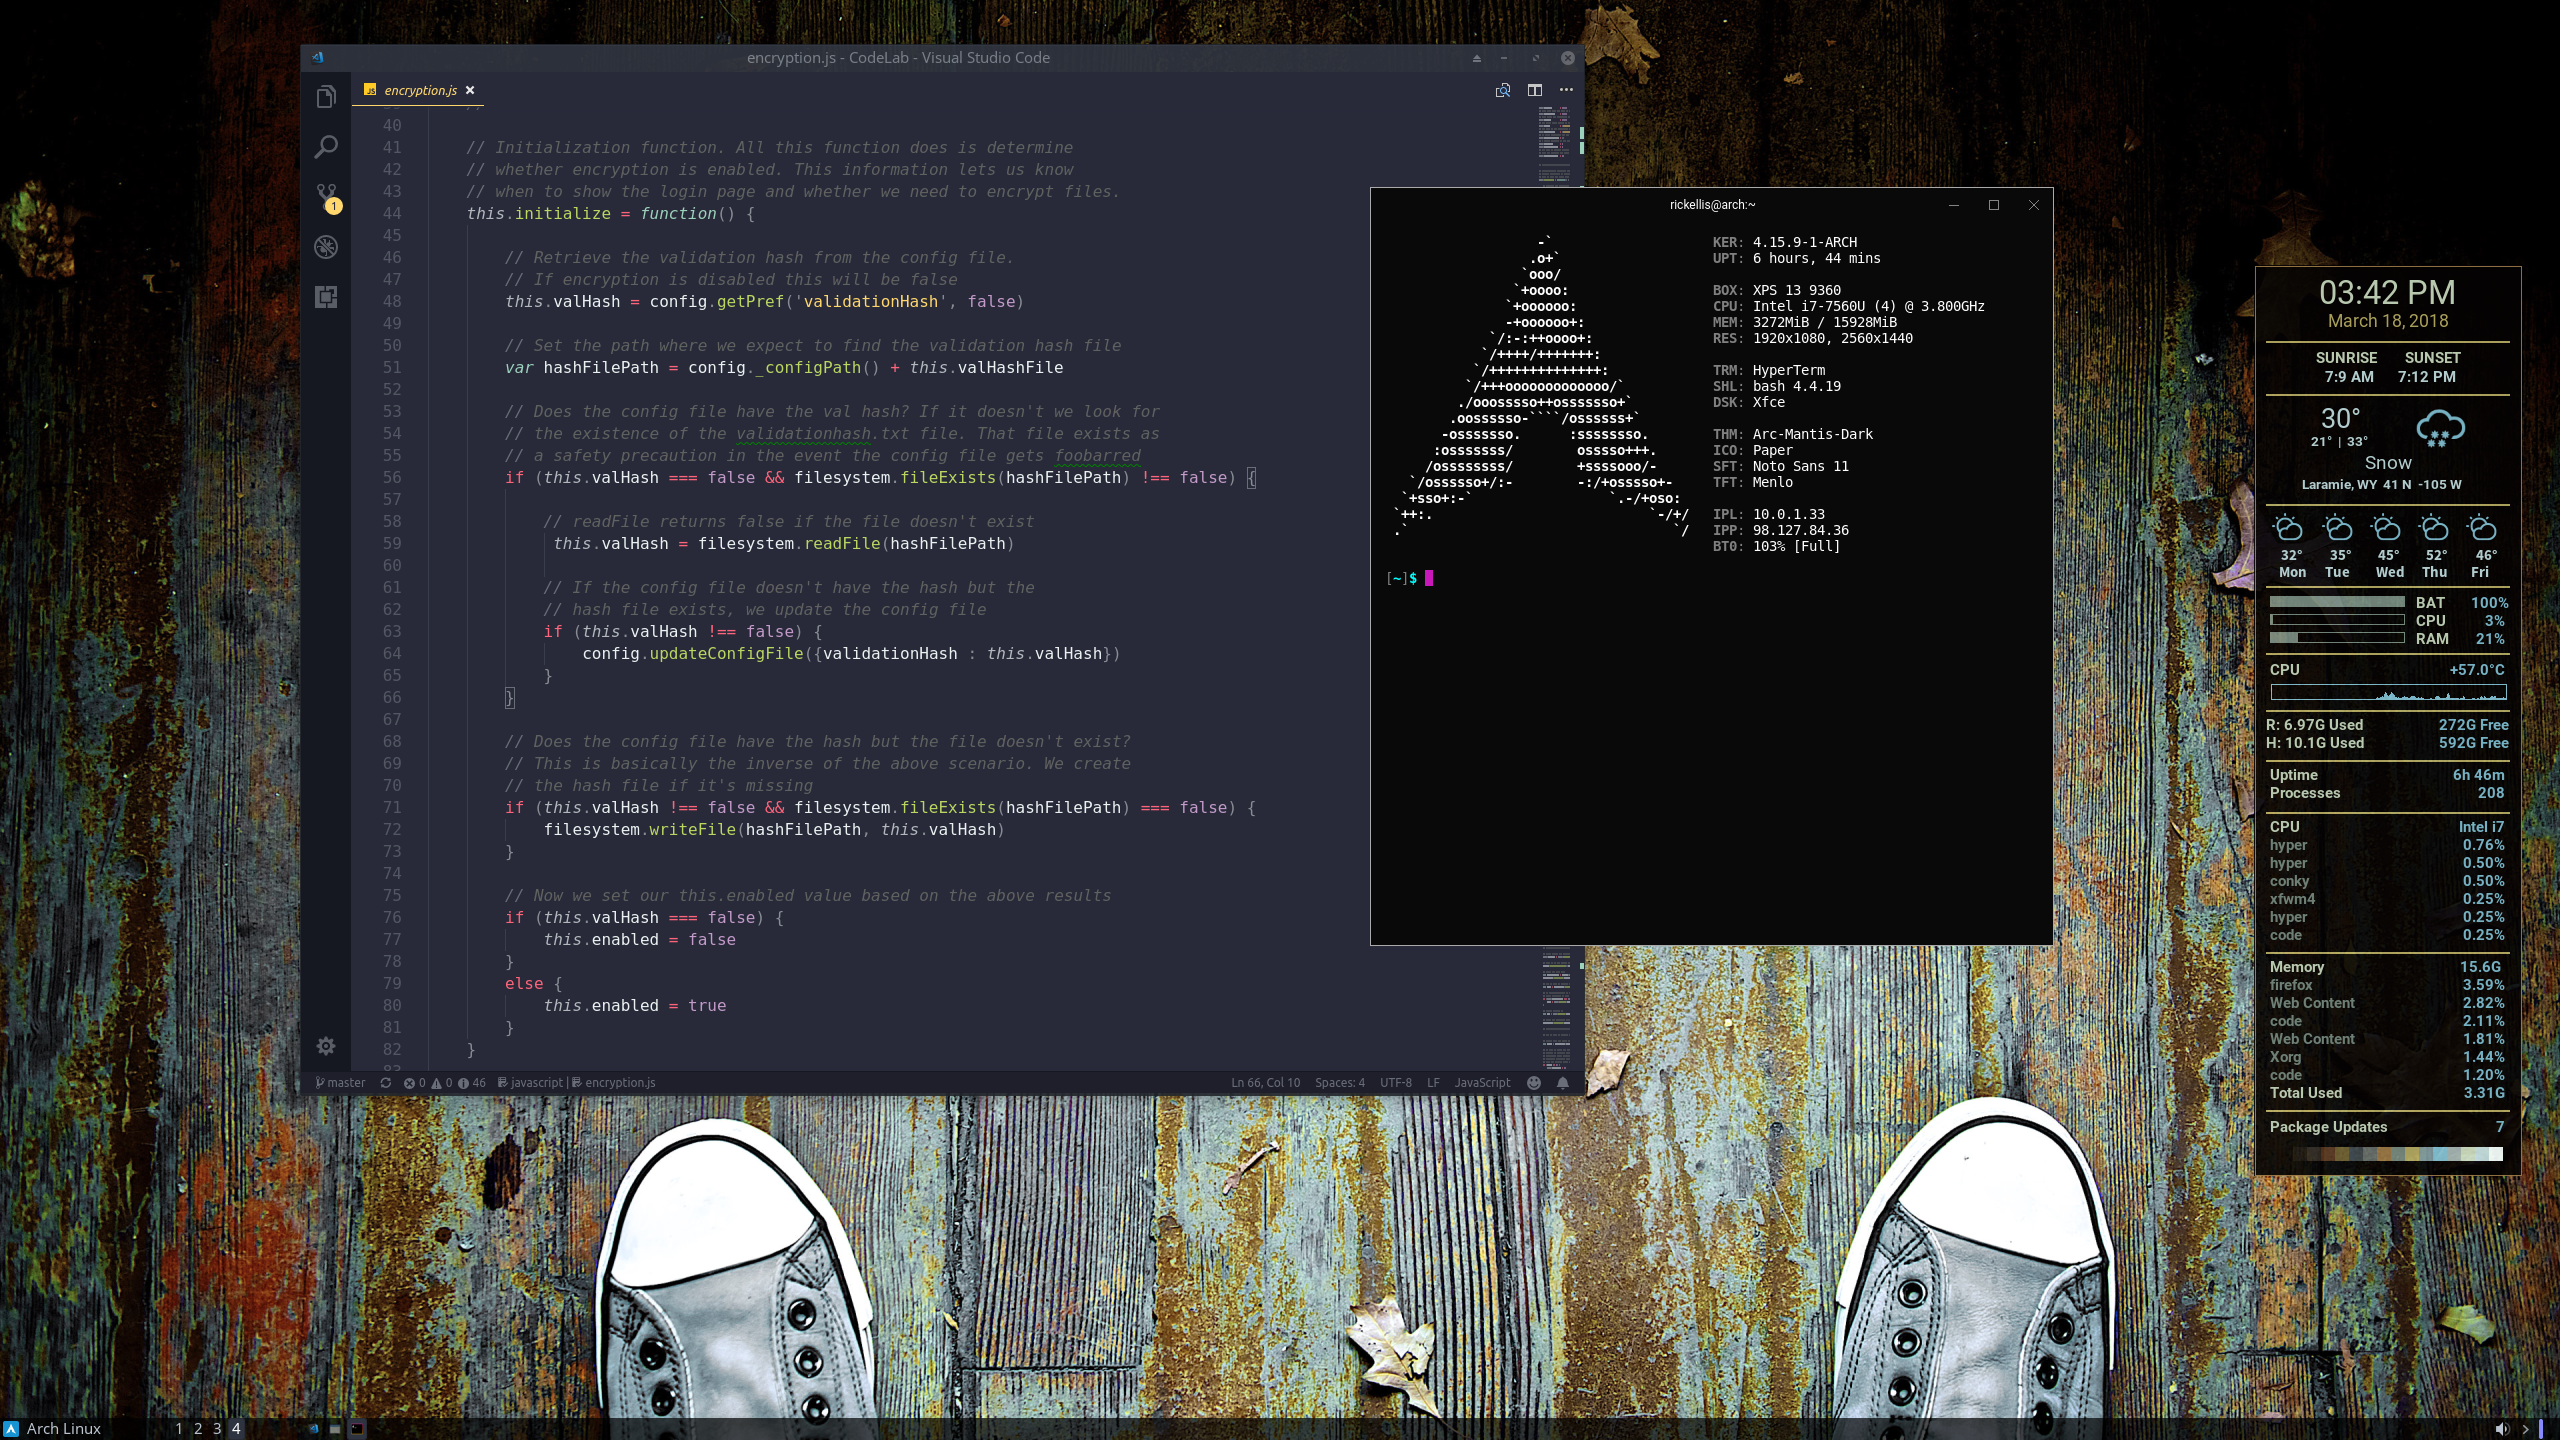 GitHub - rickellis/ArchMatic: Arch Linux post-installation setup and